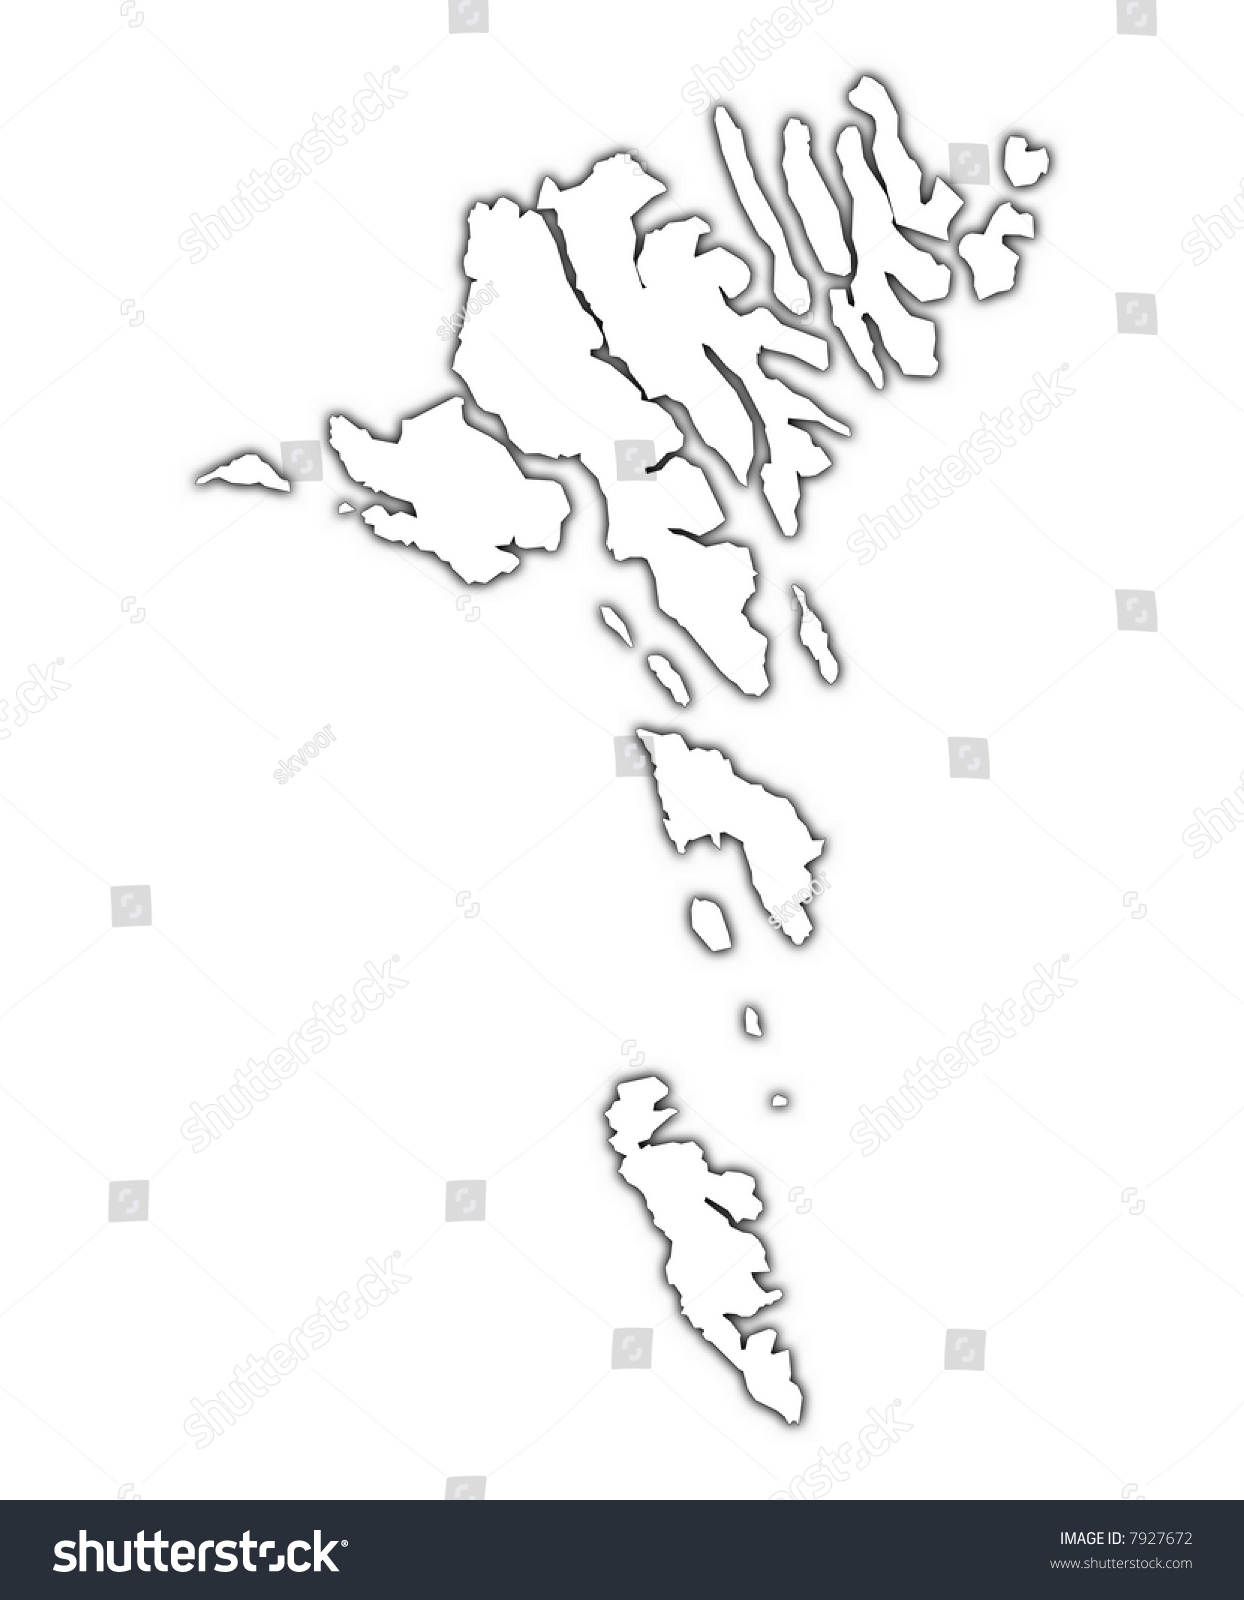 faroe islands outline map shadow detailed stock illustration  - faroe islands outline map with shadow detailed mercator projection